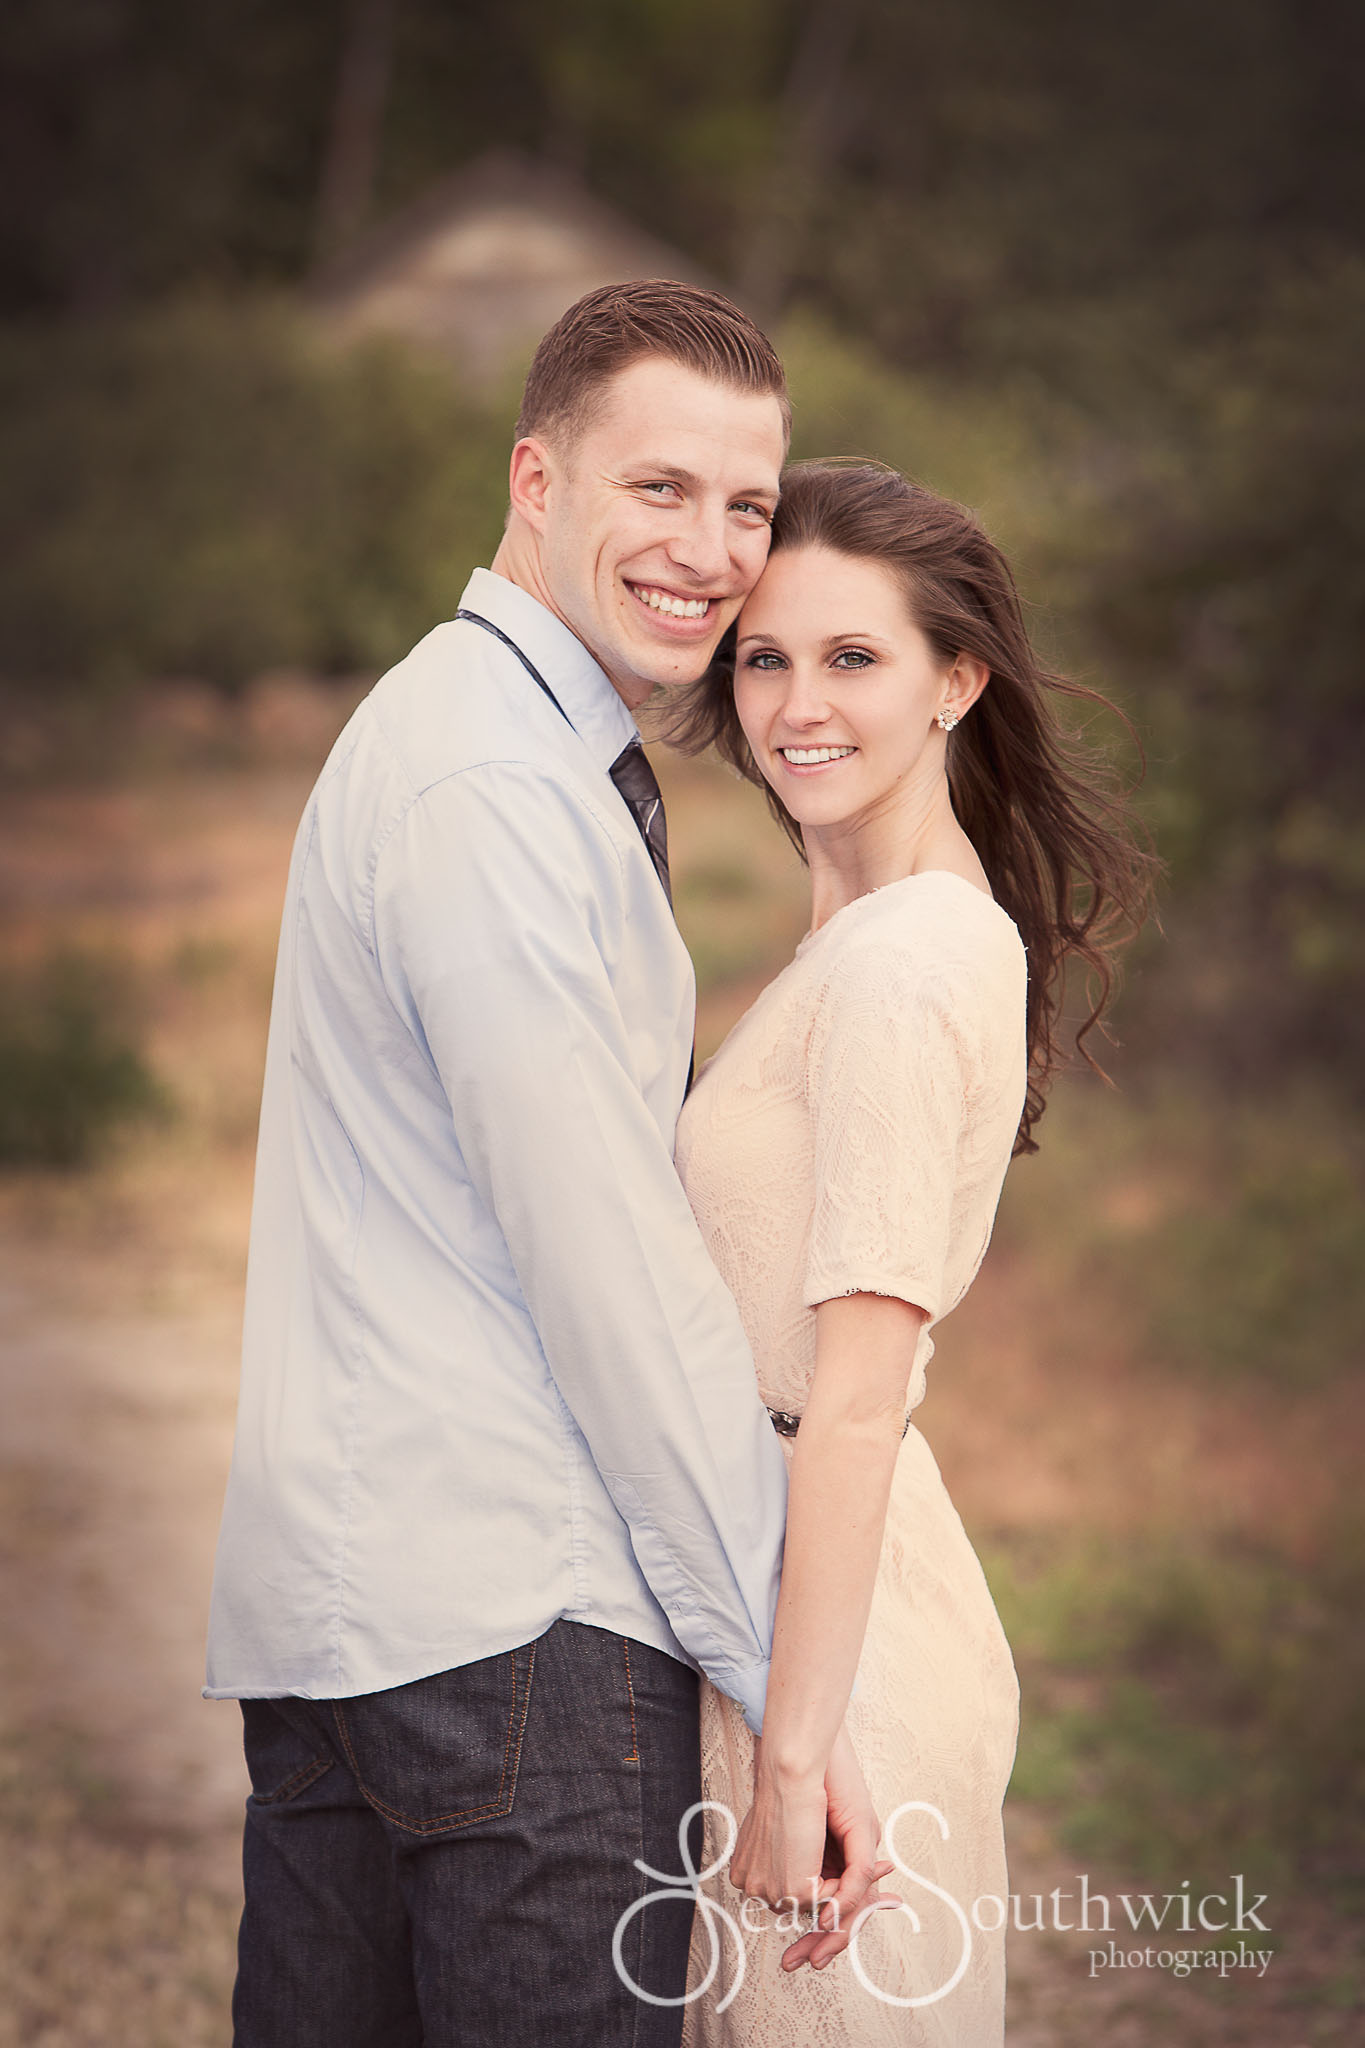 Engagement Photography Leah Southwick Photography-7.jpg